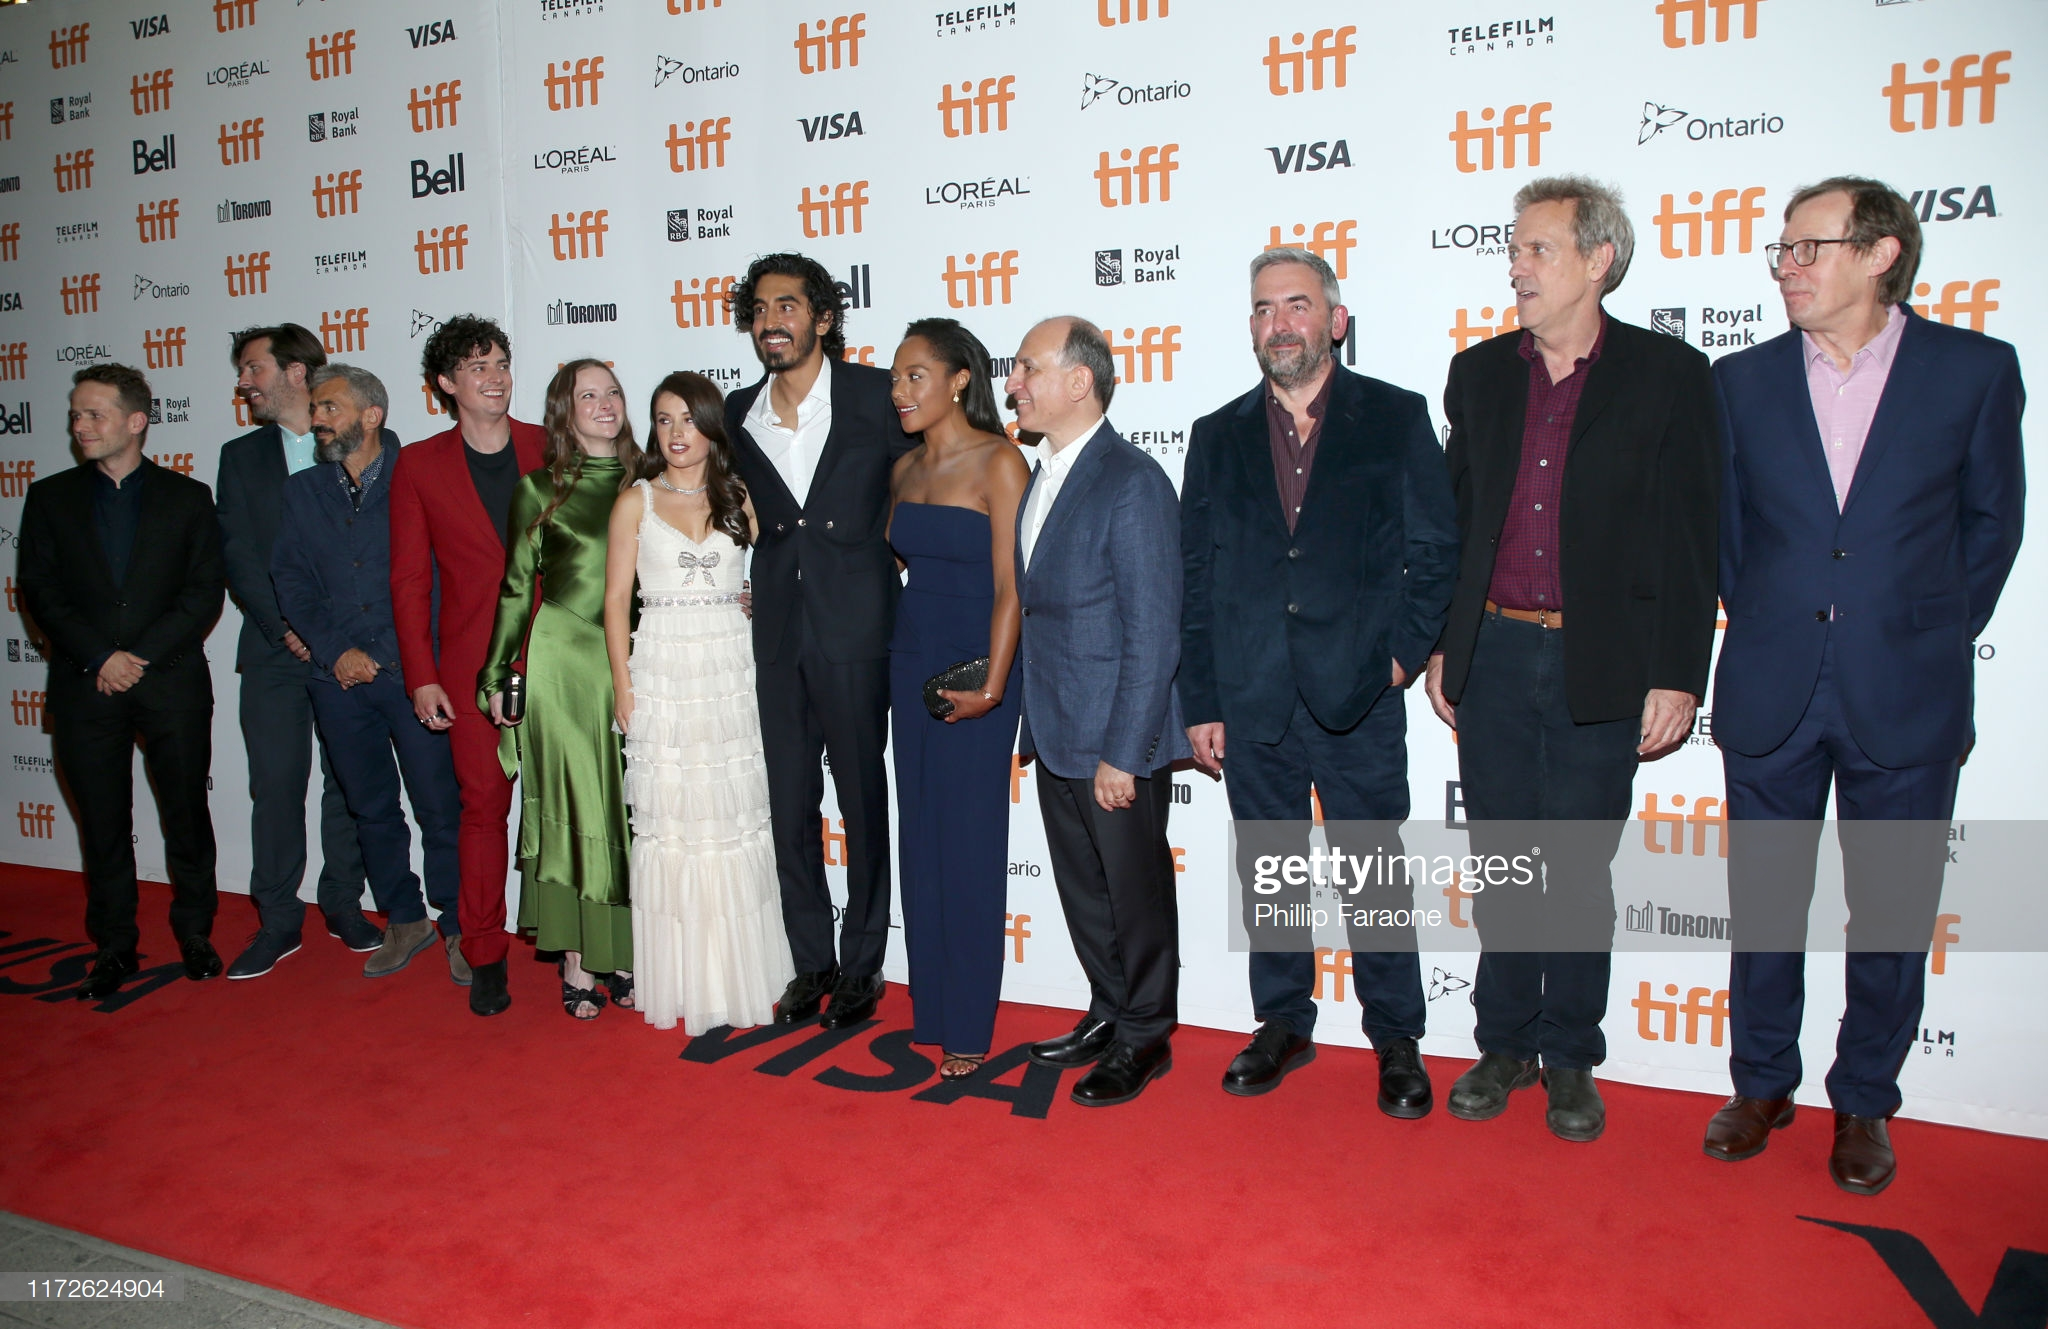 """TORONTO, ONTARIO - SEPTEMBER 05: (L-R) -Ollie Madden, Ben Browning, Daniel Battsek, Aneurin Barnard, Morfydd Clark, Aimee Kelly, Dev Patel, Rosalind Eleazar, Armando Iannucci, Simon Blackwell, Hugh Laurie and Kevin Loader attend """"The Personal History Of David Copperfield"""" premiere during the 2019 Toronto International Film Festival at Princess of Wales Theatre on September 05, 2019 in Toronto, Canada. (Photo by Phillip Faraone/Getty Images)"""